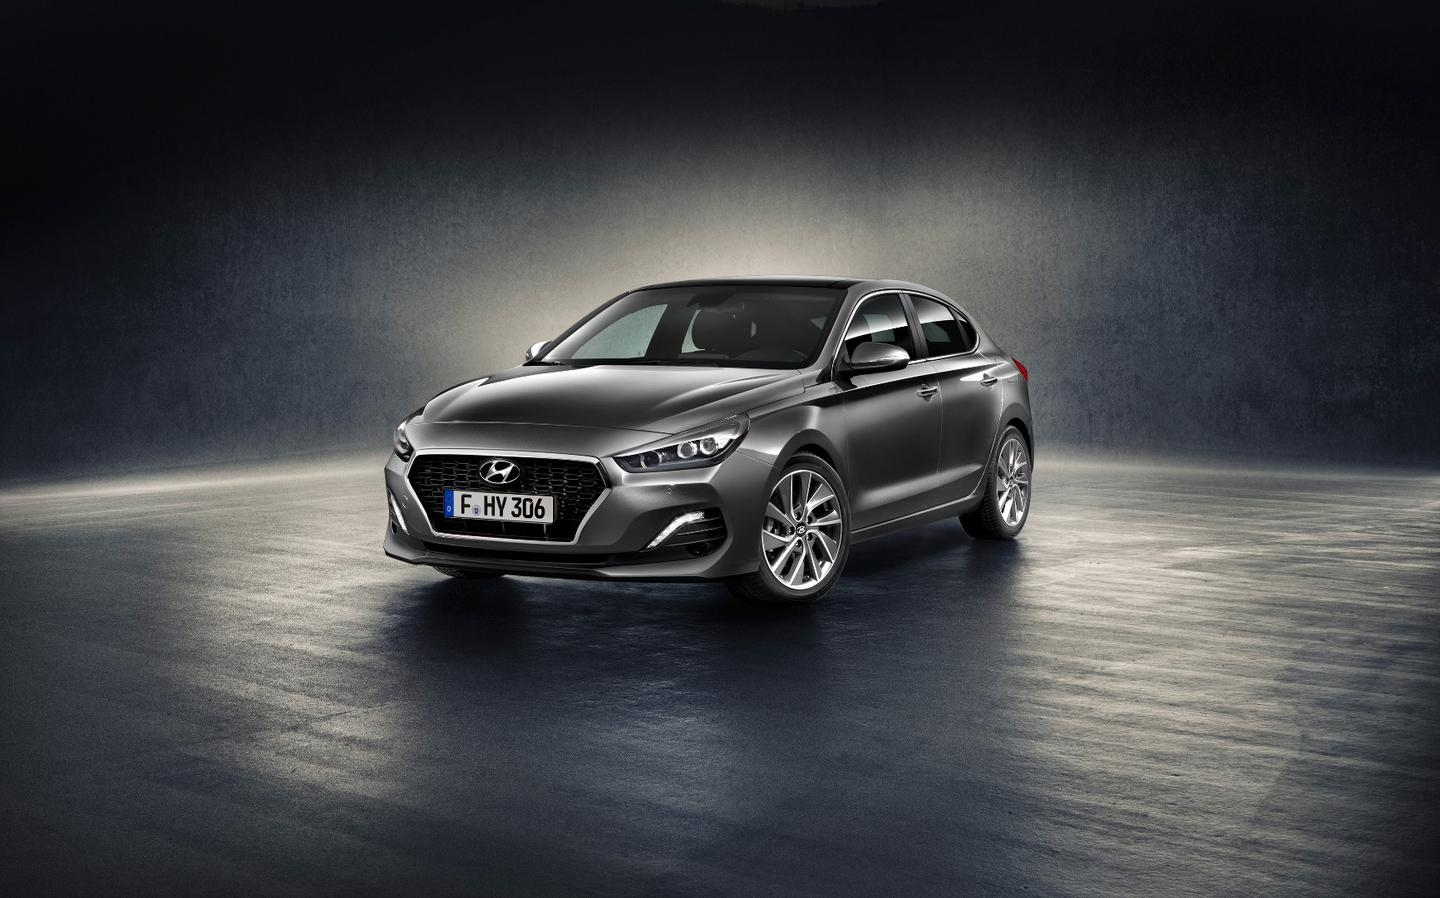 The nose of the Hyundai i30 Fastback is slightly more aggressive than the hatchback